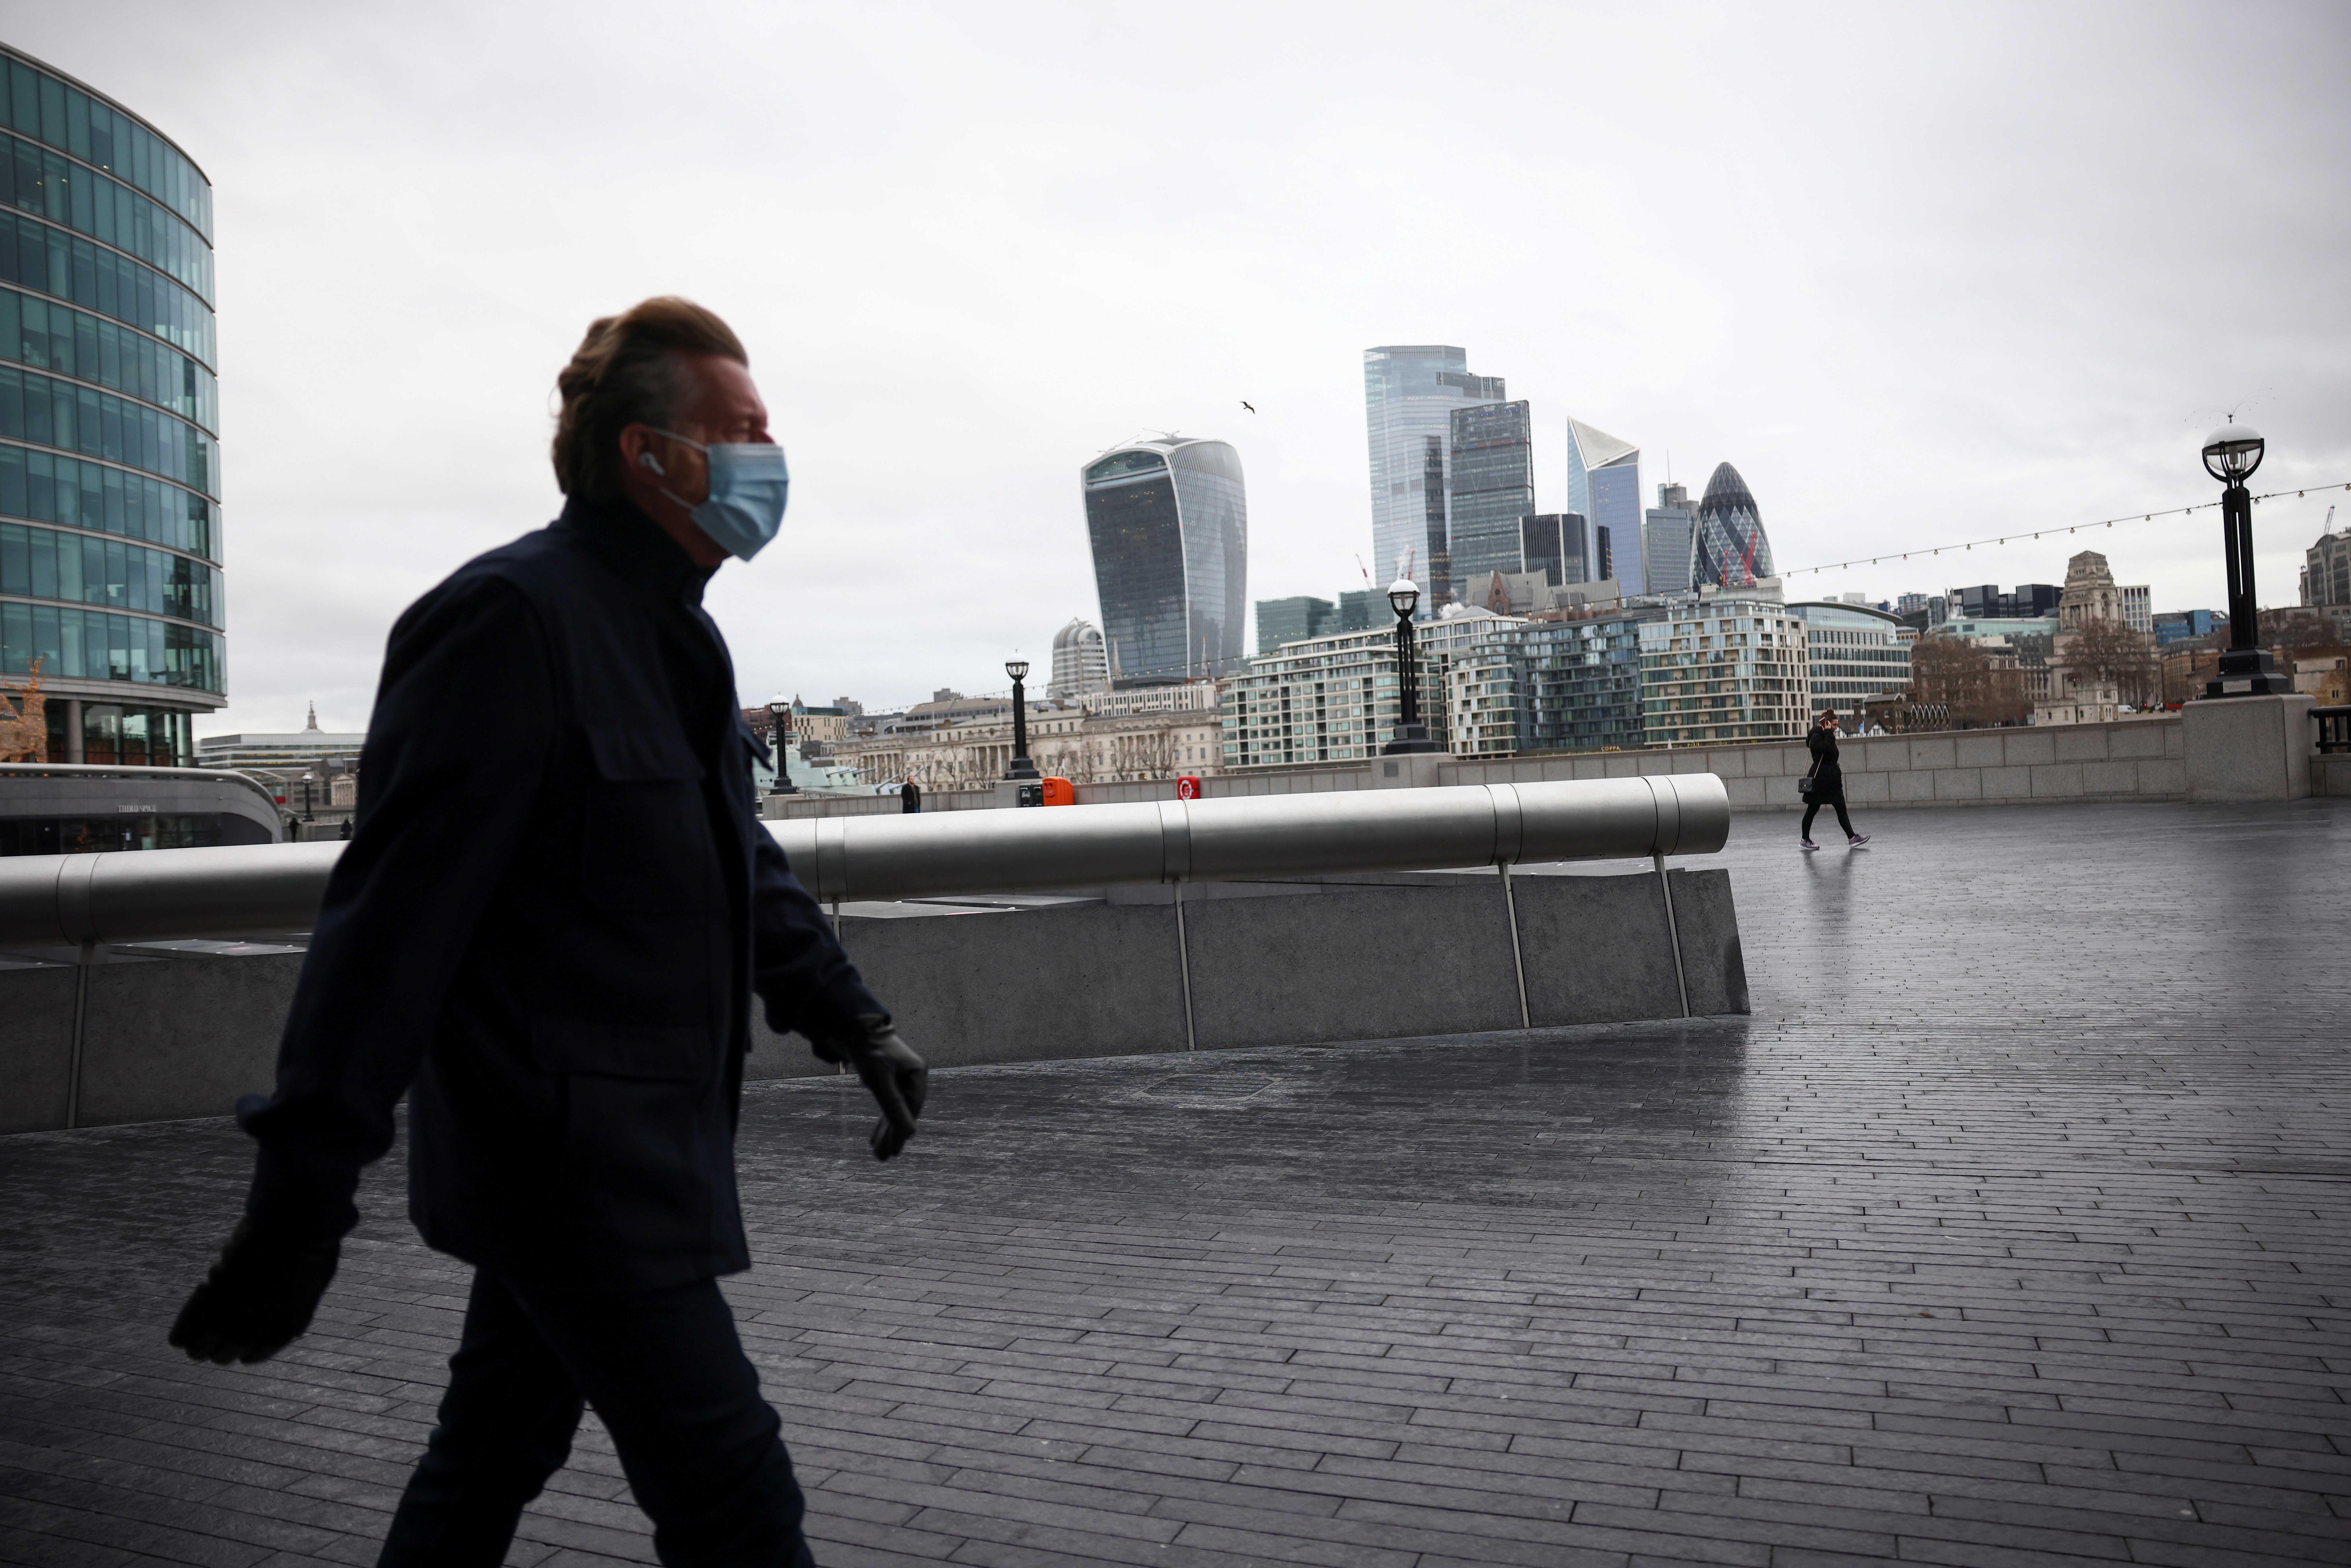 People walk at the South Bank of the River Thames, with the financial district in the background, amid the coronavirus disease (COVID-19) outbreak, in London, Britain, January 5, 2021. REUTERS/Henry Nicholls